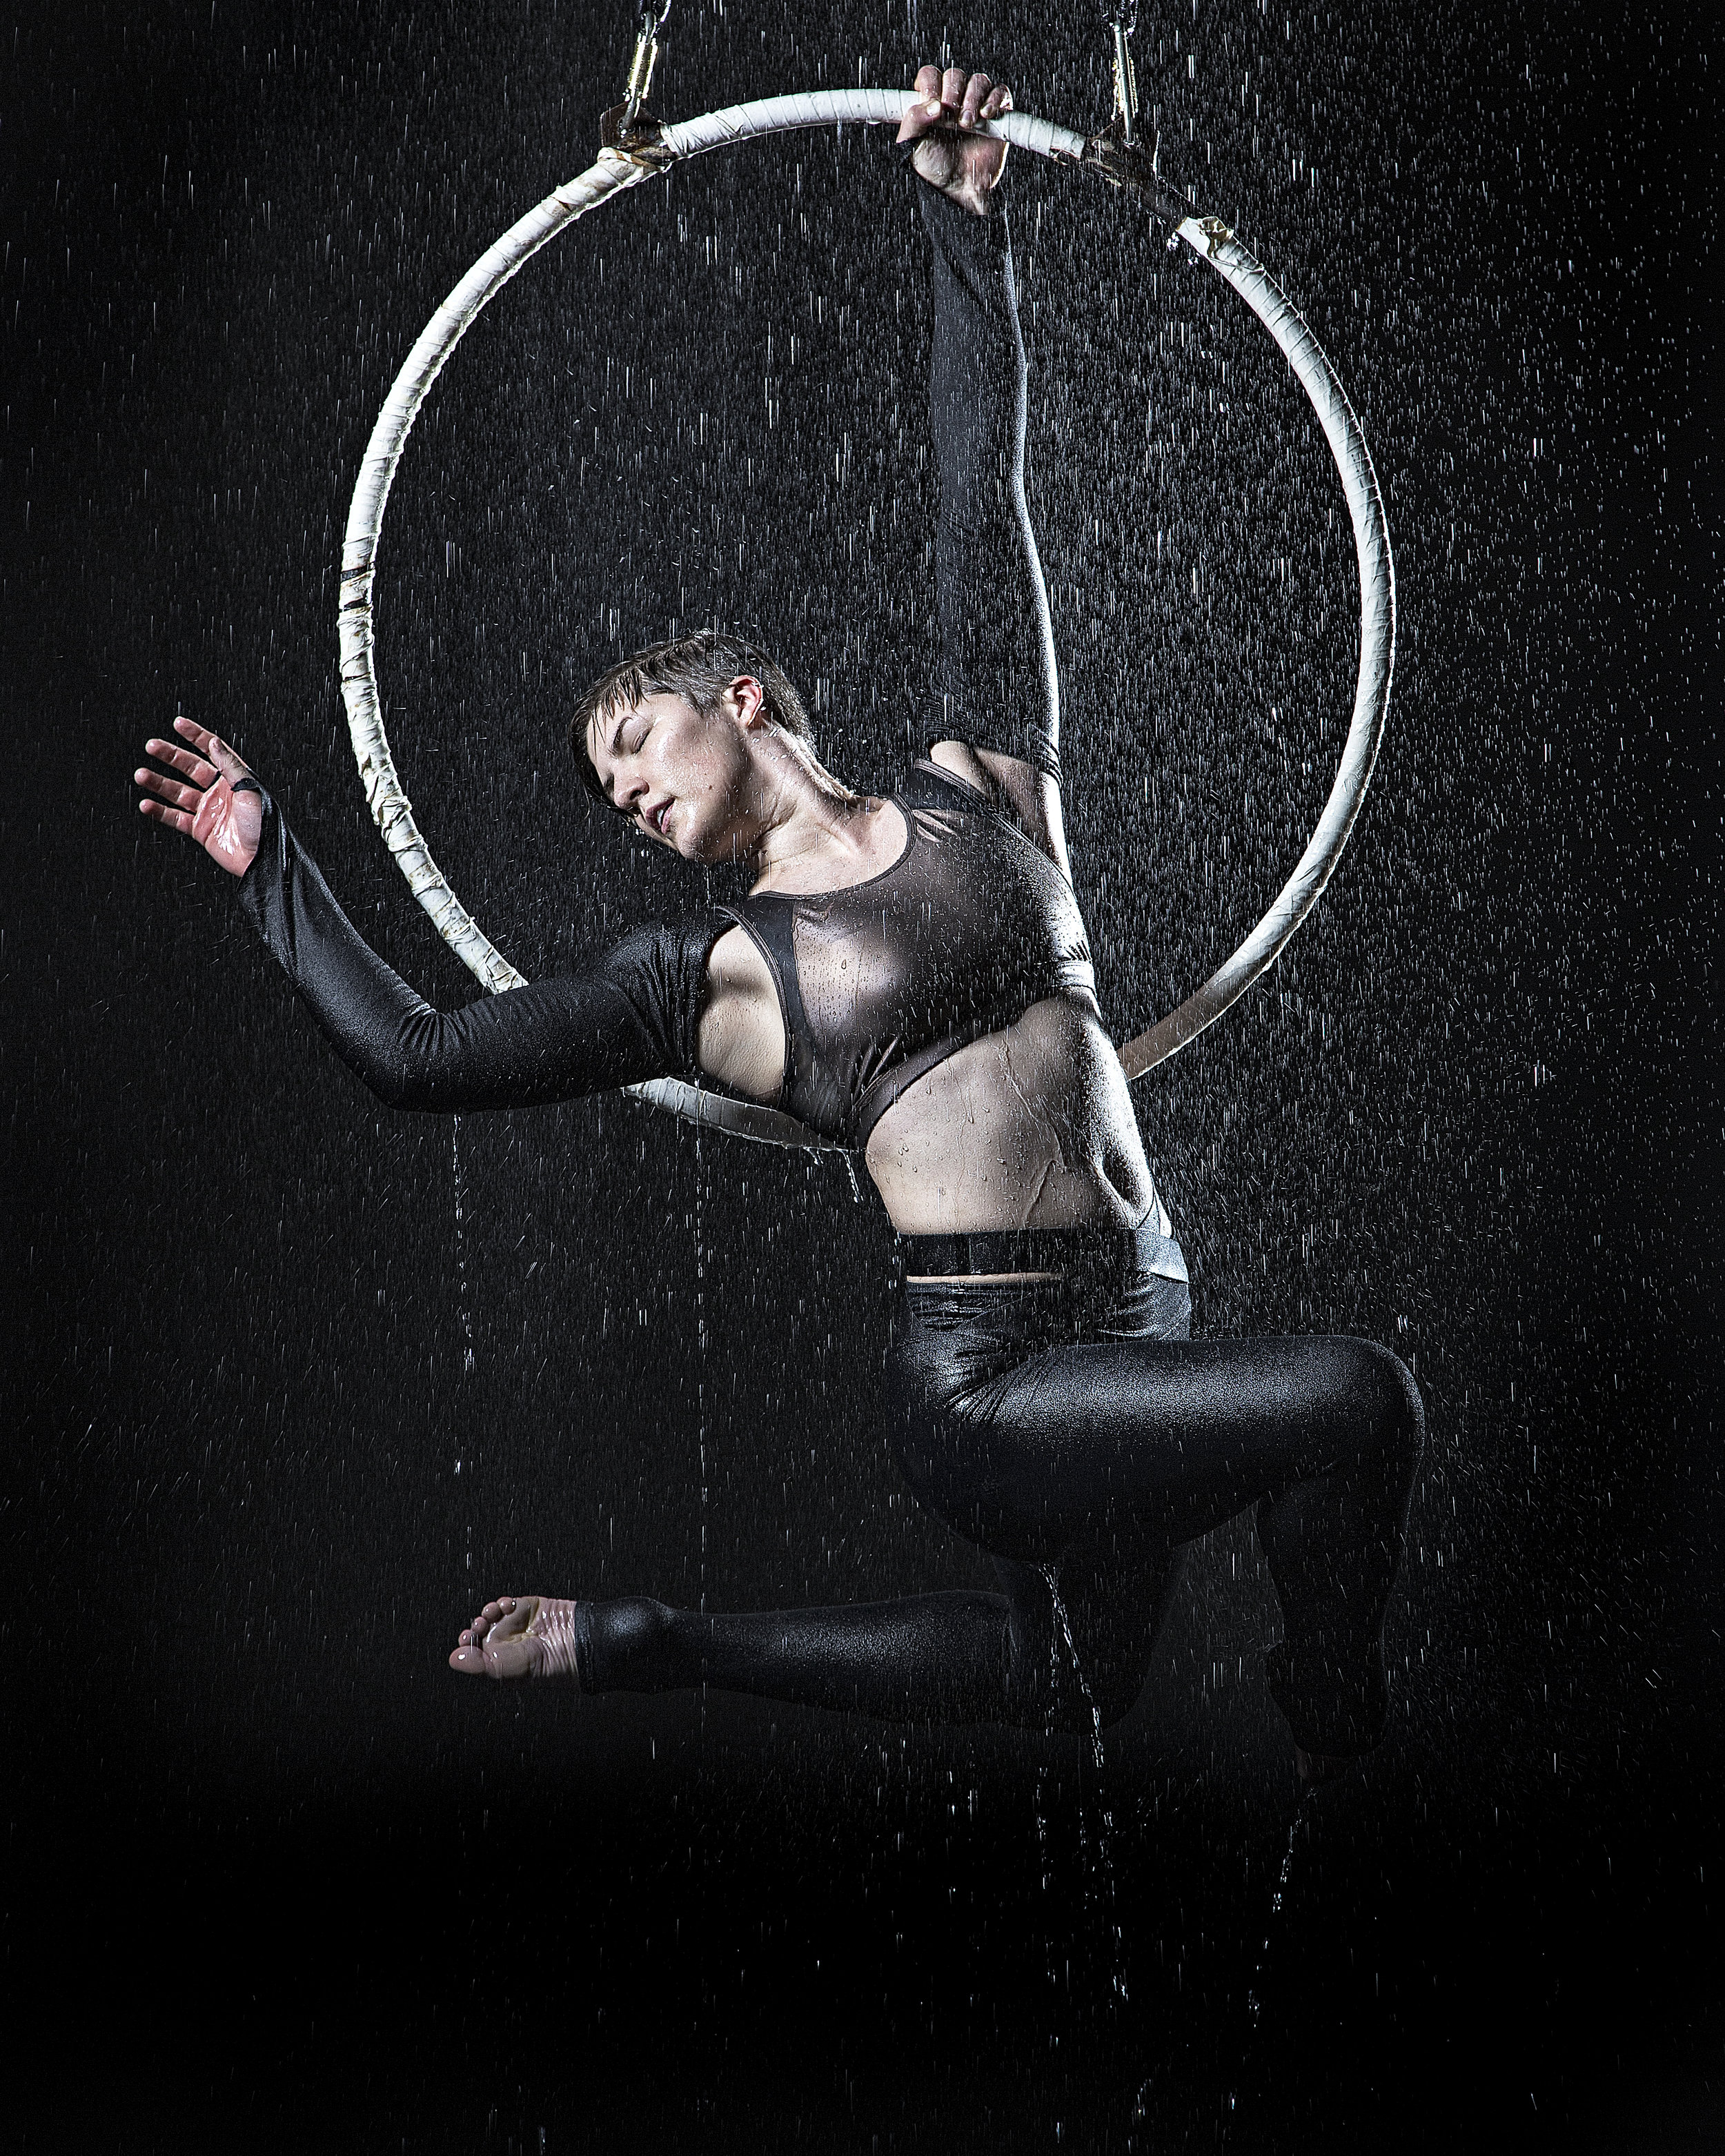 hanna blackwell - Hanna is a Charlotte-based aerialist and dancer. She majored in dance at Northwest School of the Arts in Charlotte and Piedmont Dance Conservatory, where she received most of her technical training and discovered her particular passion for release technique. In 2009, Hanna attended NC Governor's School at Salem College, where she first explored movement and choreographic practices outside of the classical realm she had always known. After a brief hiatus from dance to get her degree at Chapel Hill, Hanna made up her mind to move back to her hometown of Charlotte to find her place in the growing city and its blossoming arts community, where she lives, works, and dances today.Since returning to Charlotte, Hanna has had the privilege of being an artist-in-residence at Goodyear Arts in 2015. She has toured with NC Dance Festival in Eric Mullis's